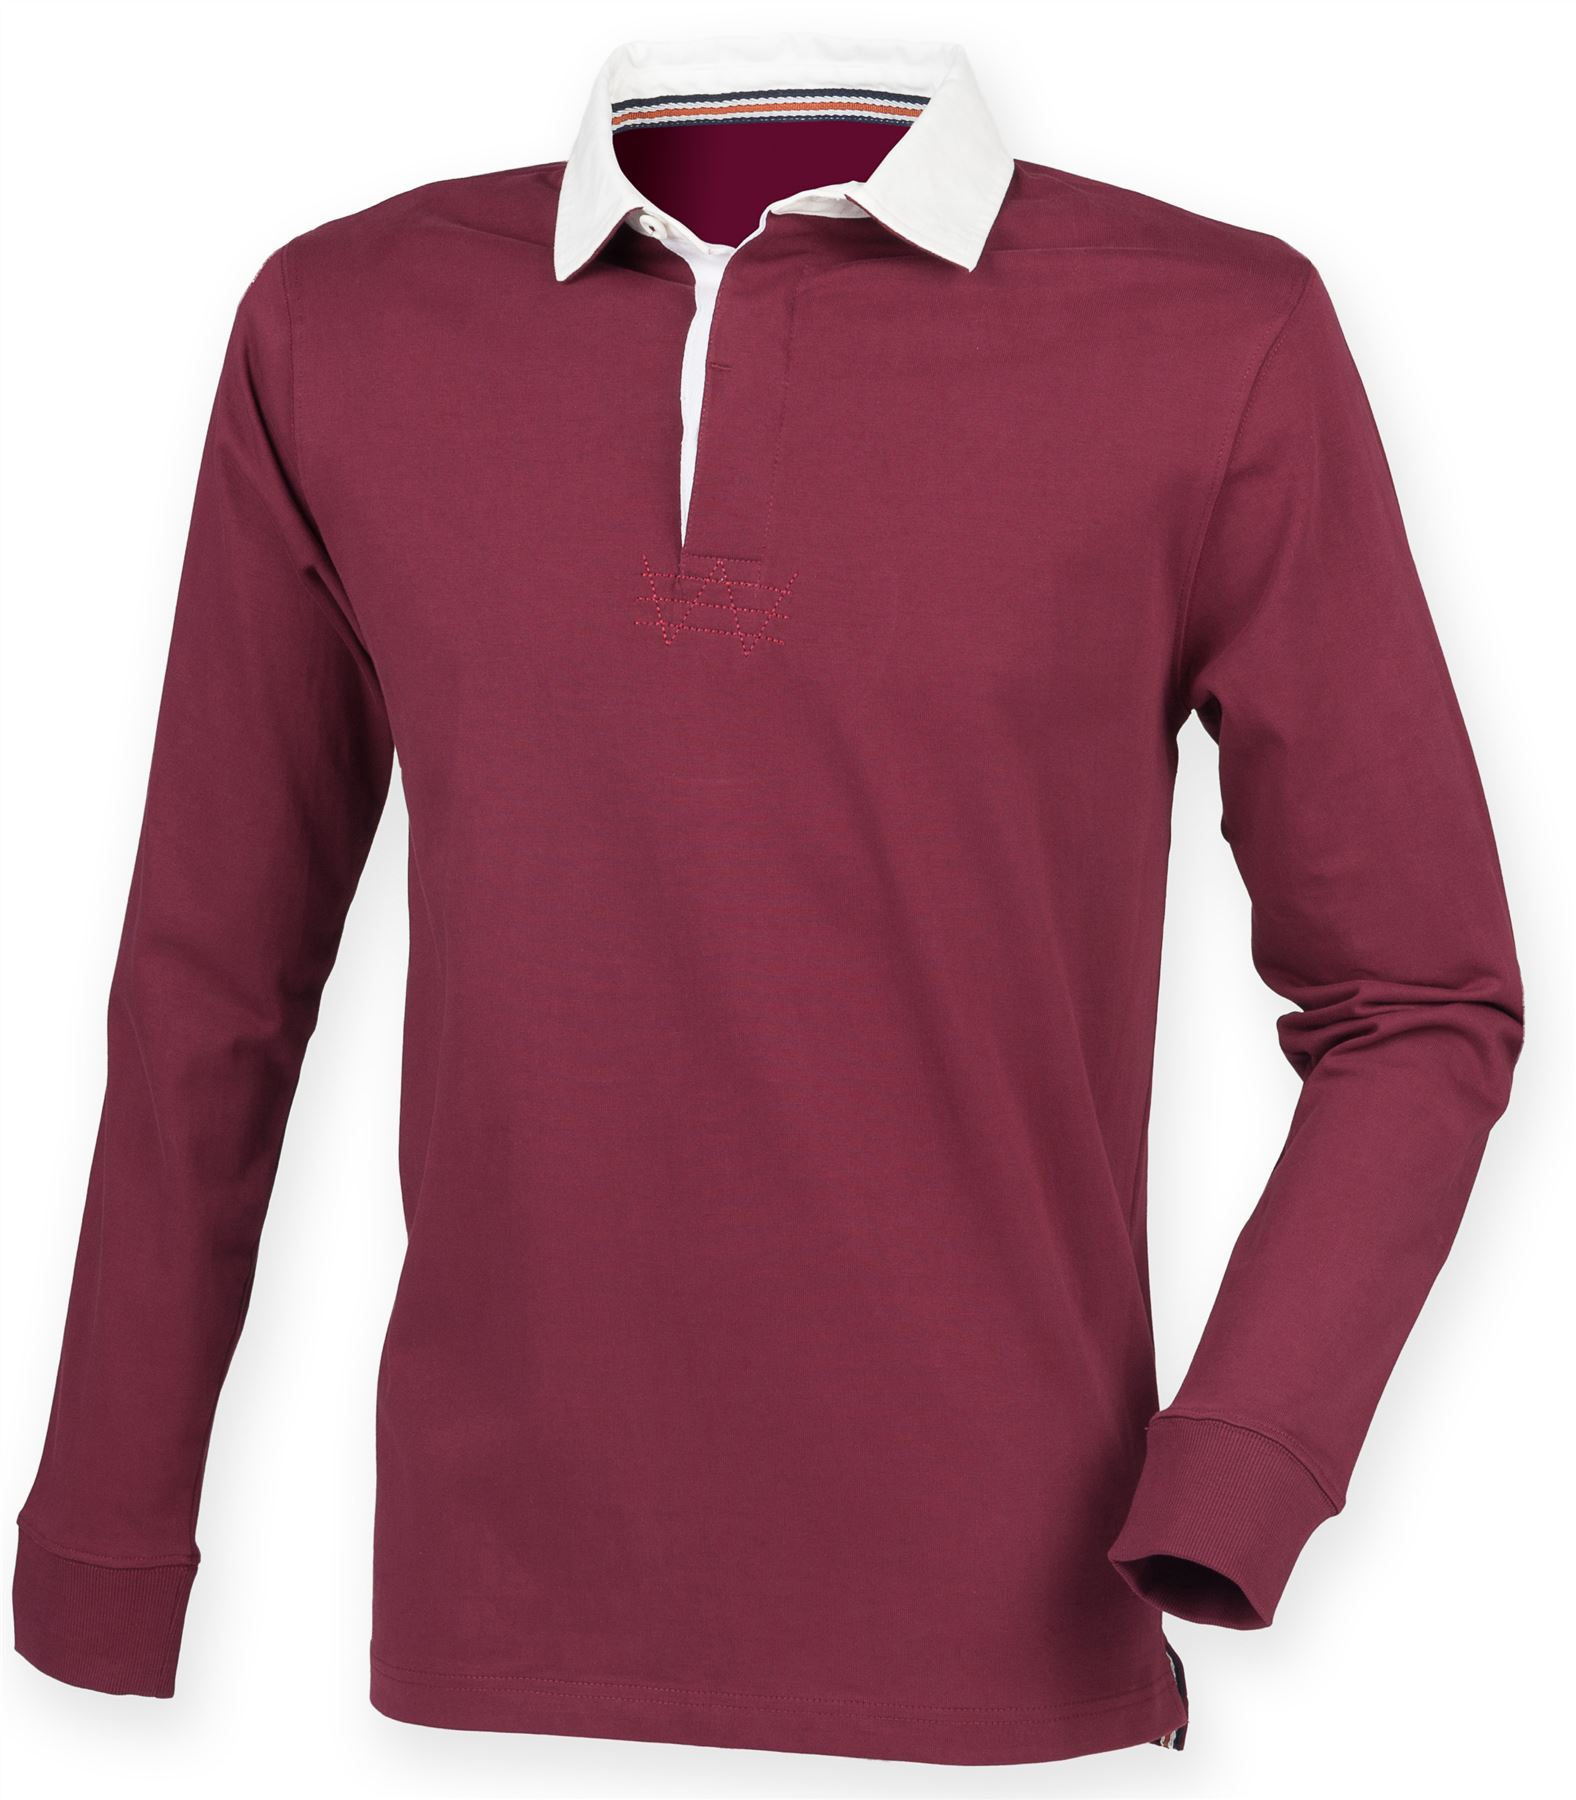 Perfect for the office, our Women's Plus Size Shirts are functional and stylish.